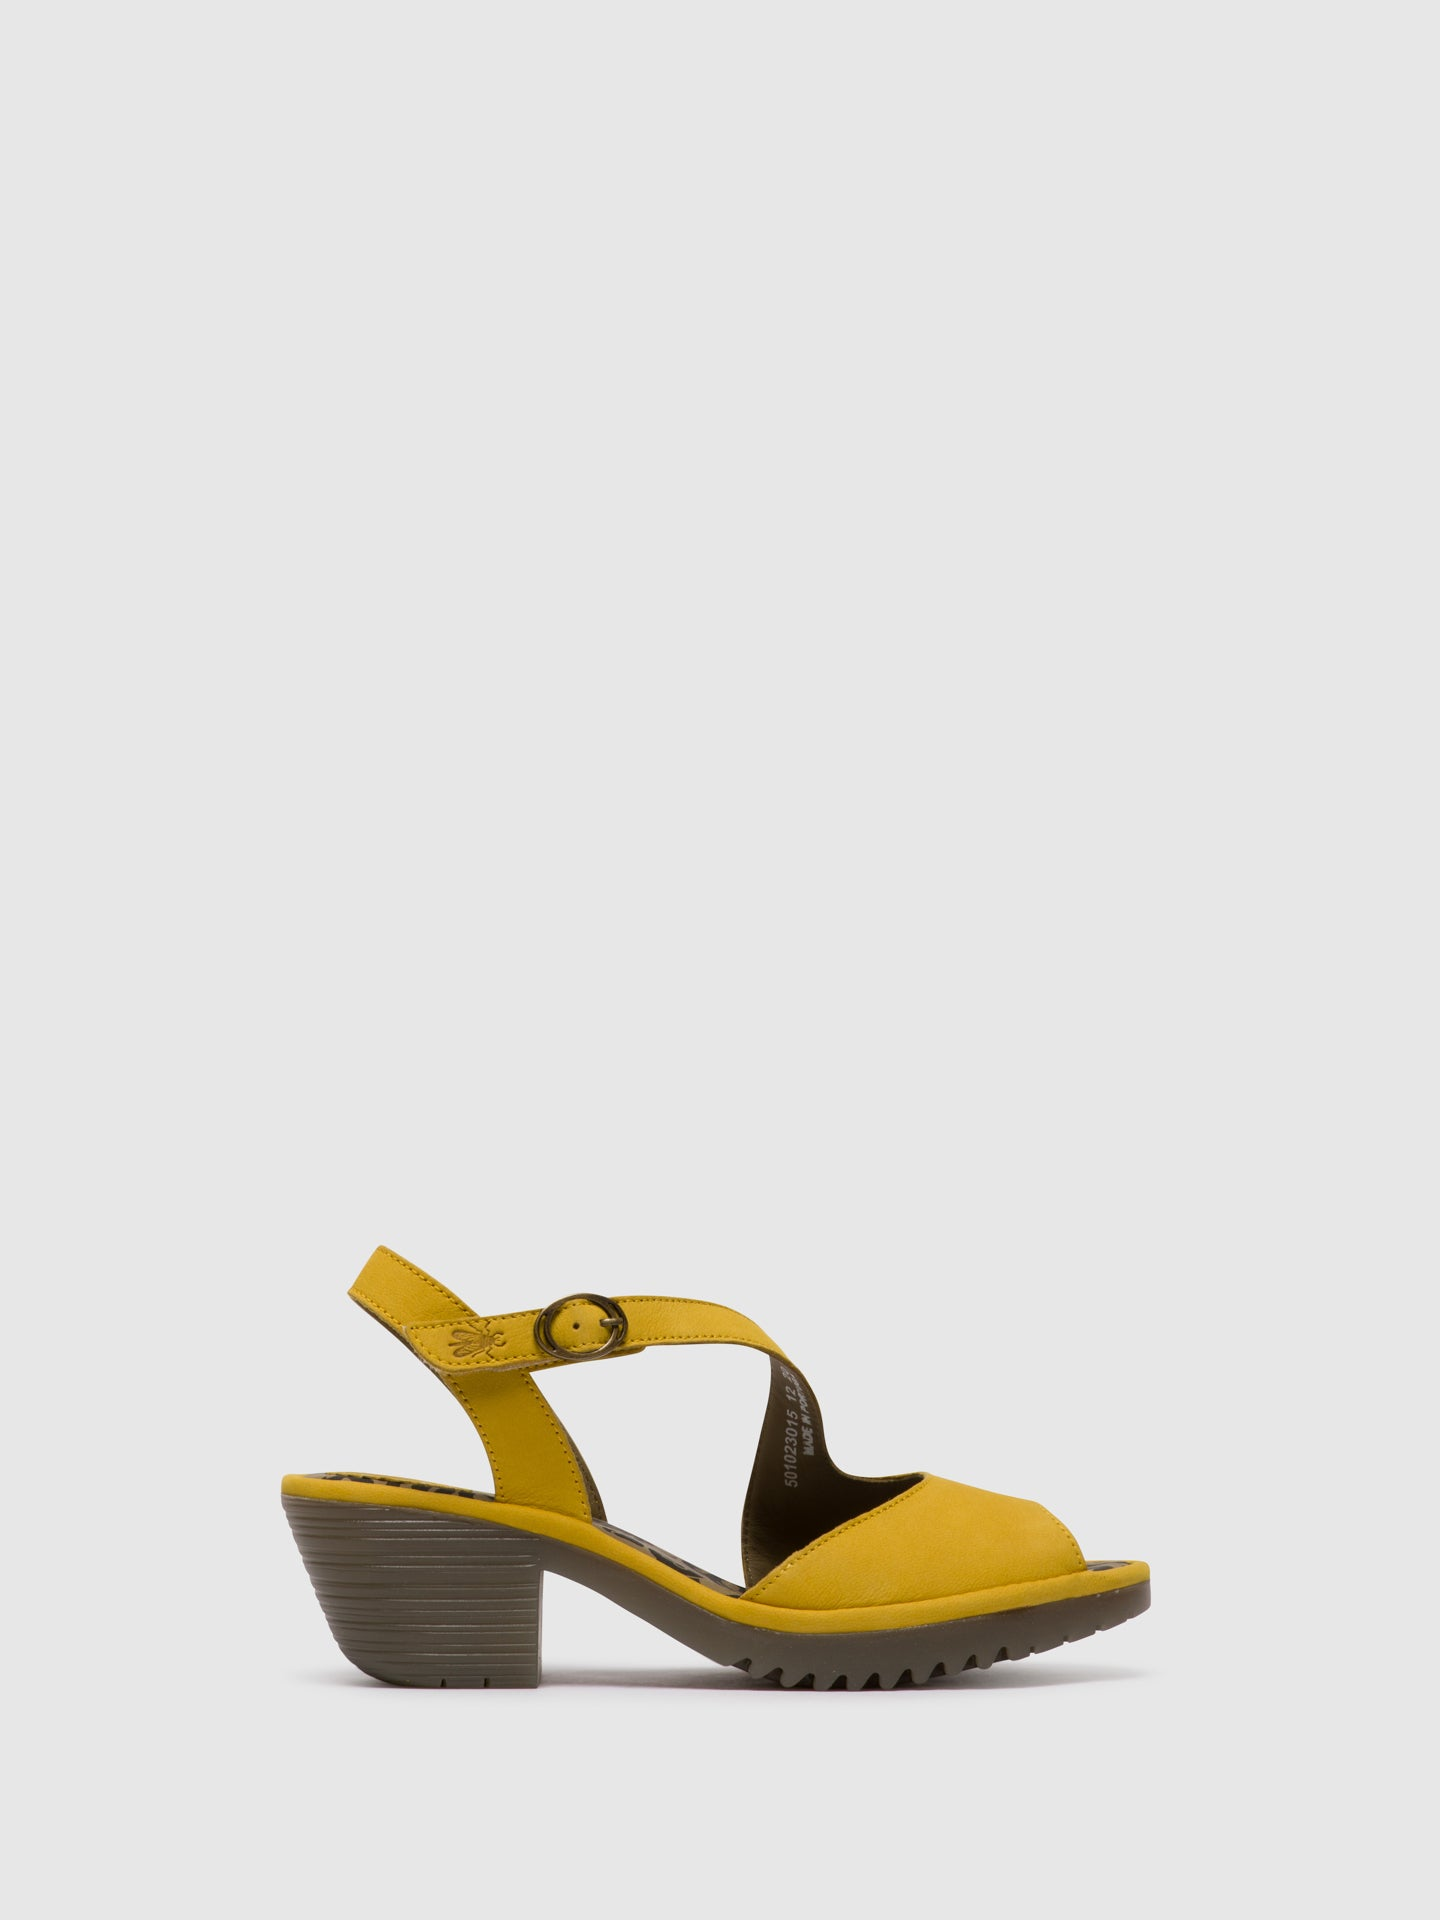 Fly London Velcro Sandals WYNO023FLY BRIGHT YELLOW